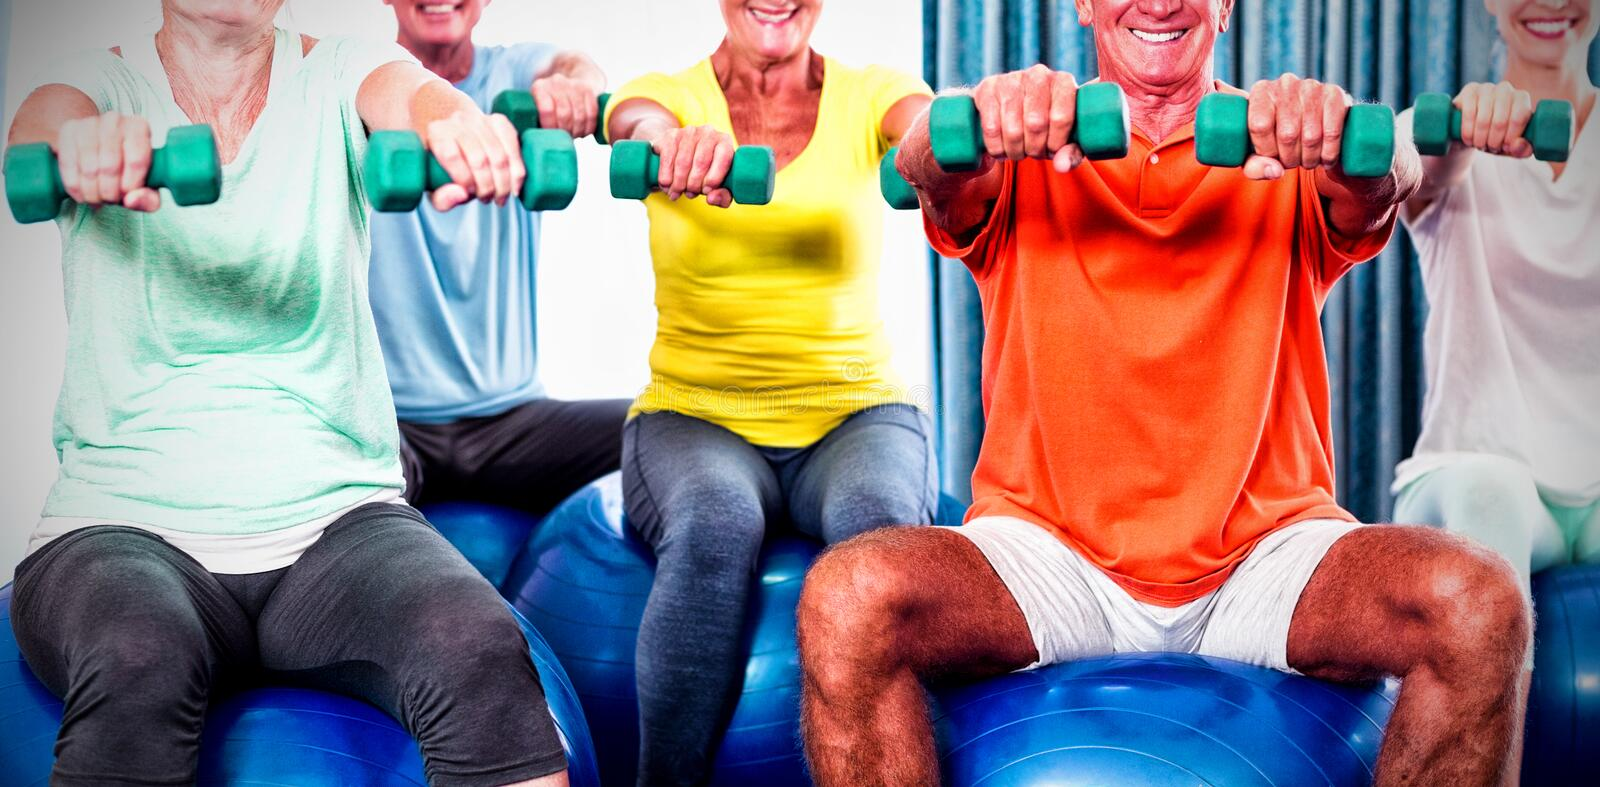 Portrait of seniors using exercise ball and weights royalty free stock photography